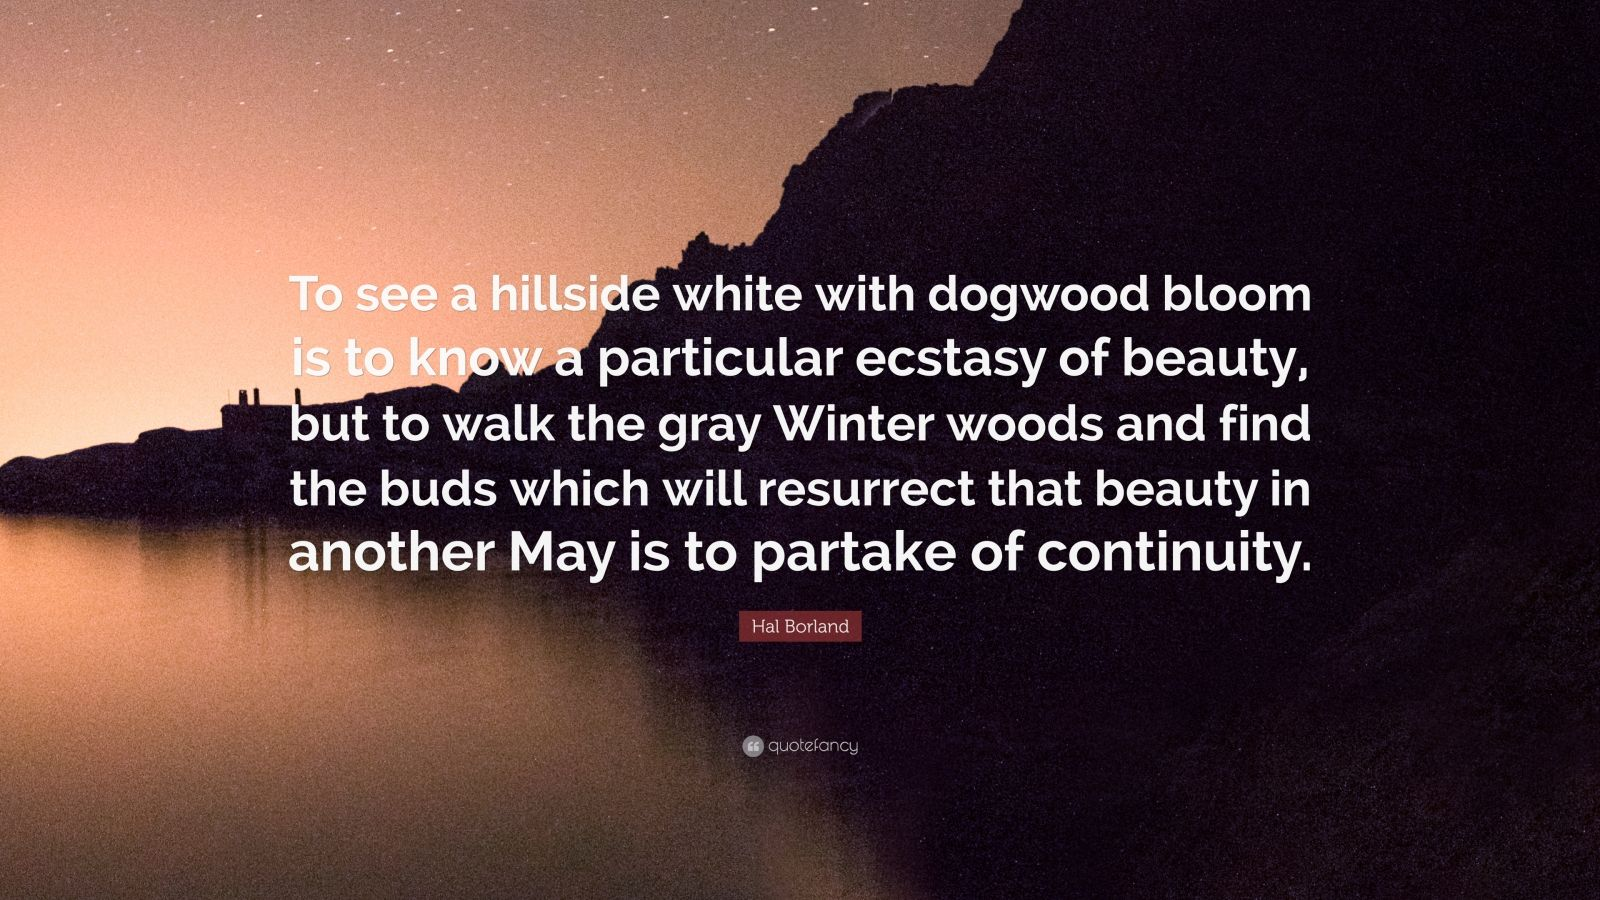 """Hal Borland Quote: """"To see a hillside white with dogwood bloom is to know a particular ecstasy of beauty, but to walk the gray Winter woods and find the buds which will resurrect that beauty in another May is to partake of continuity."""""""